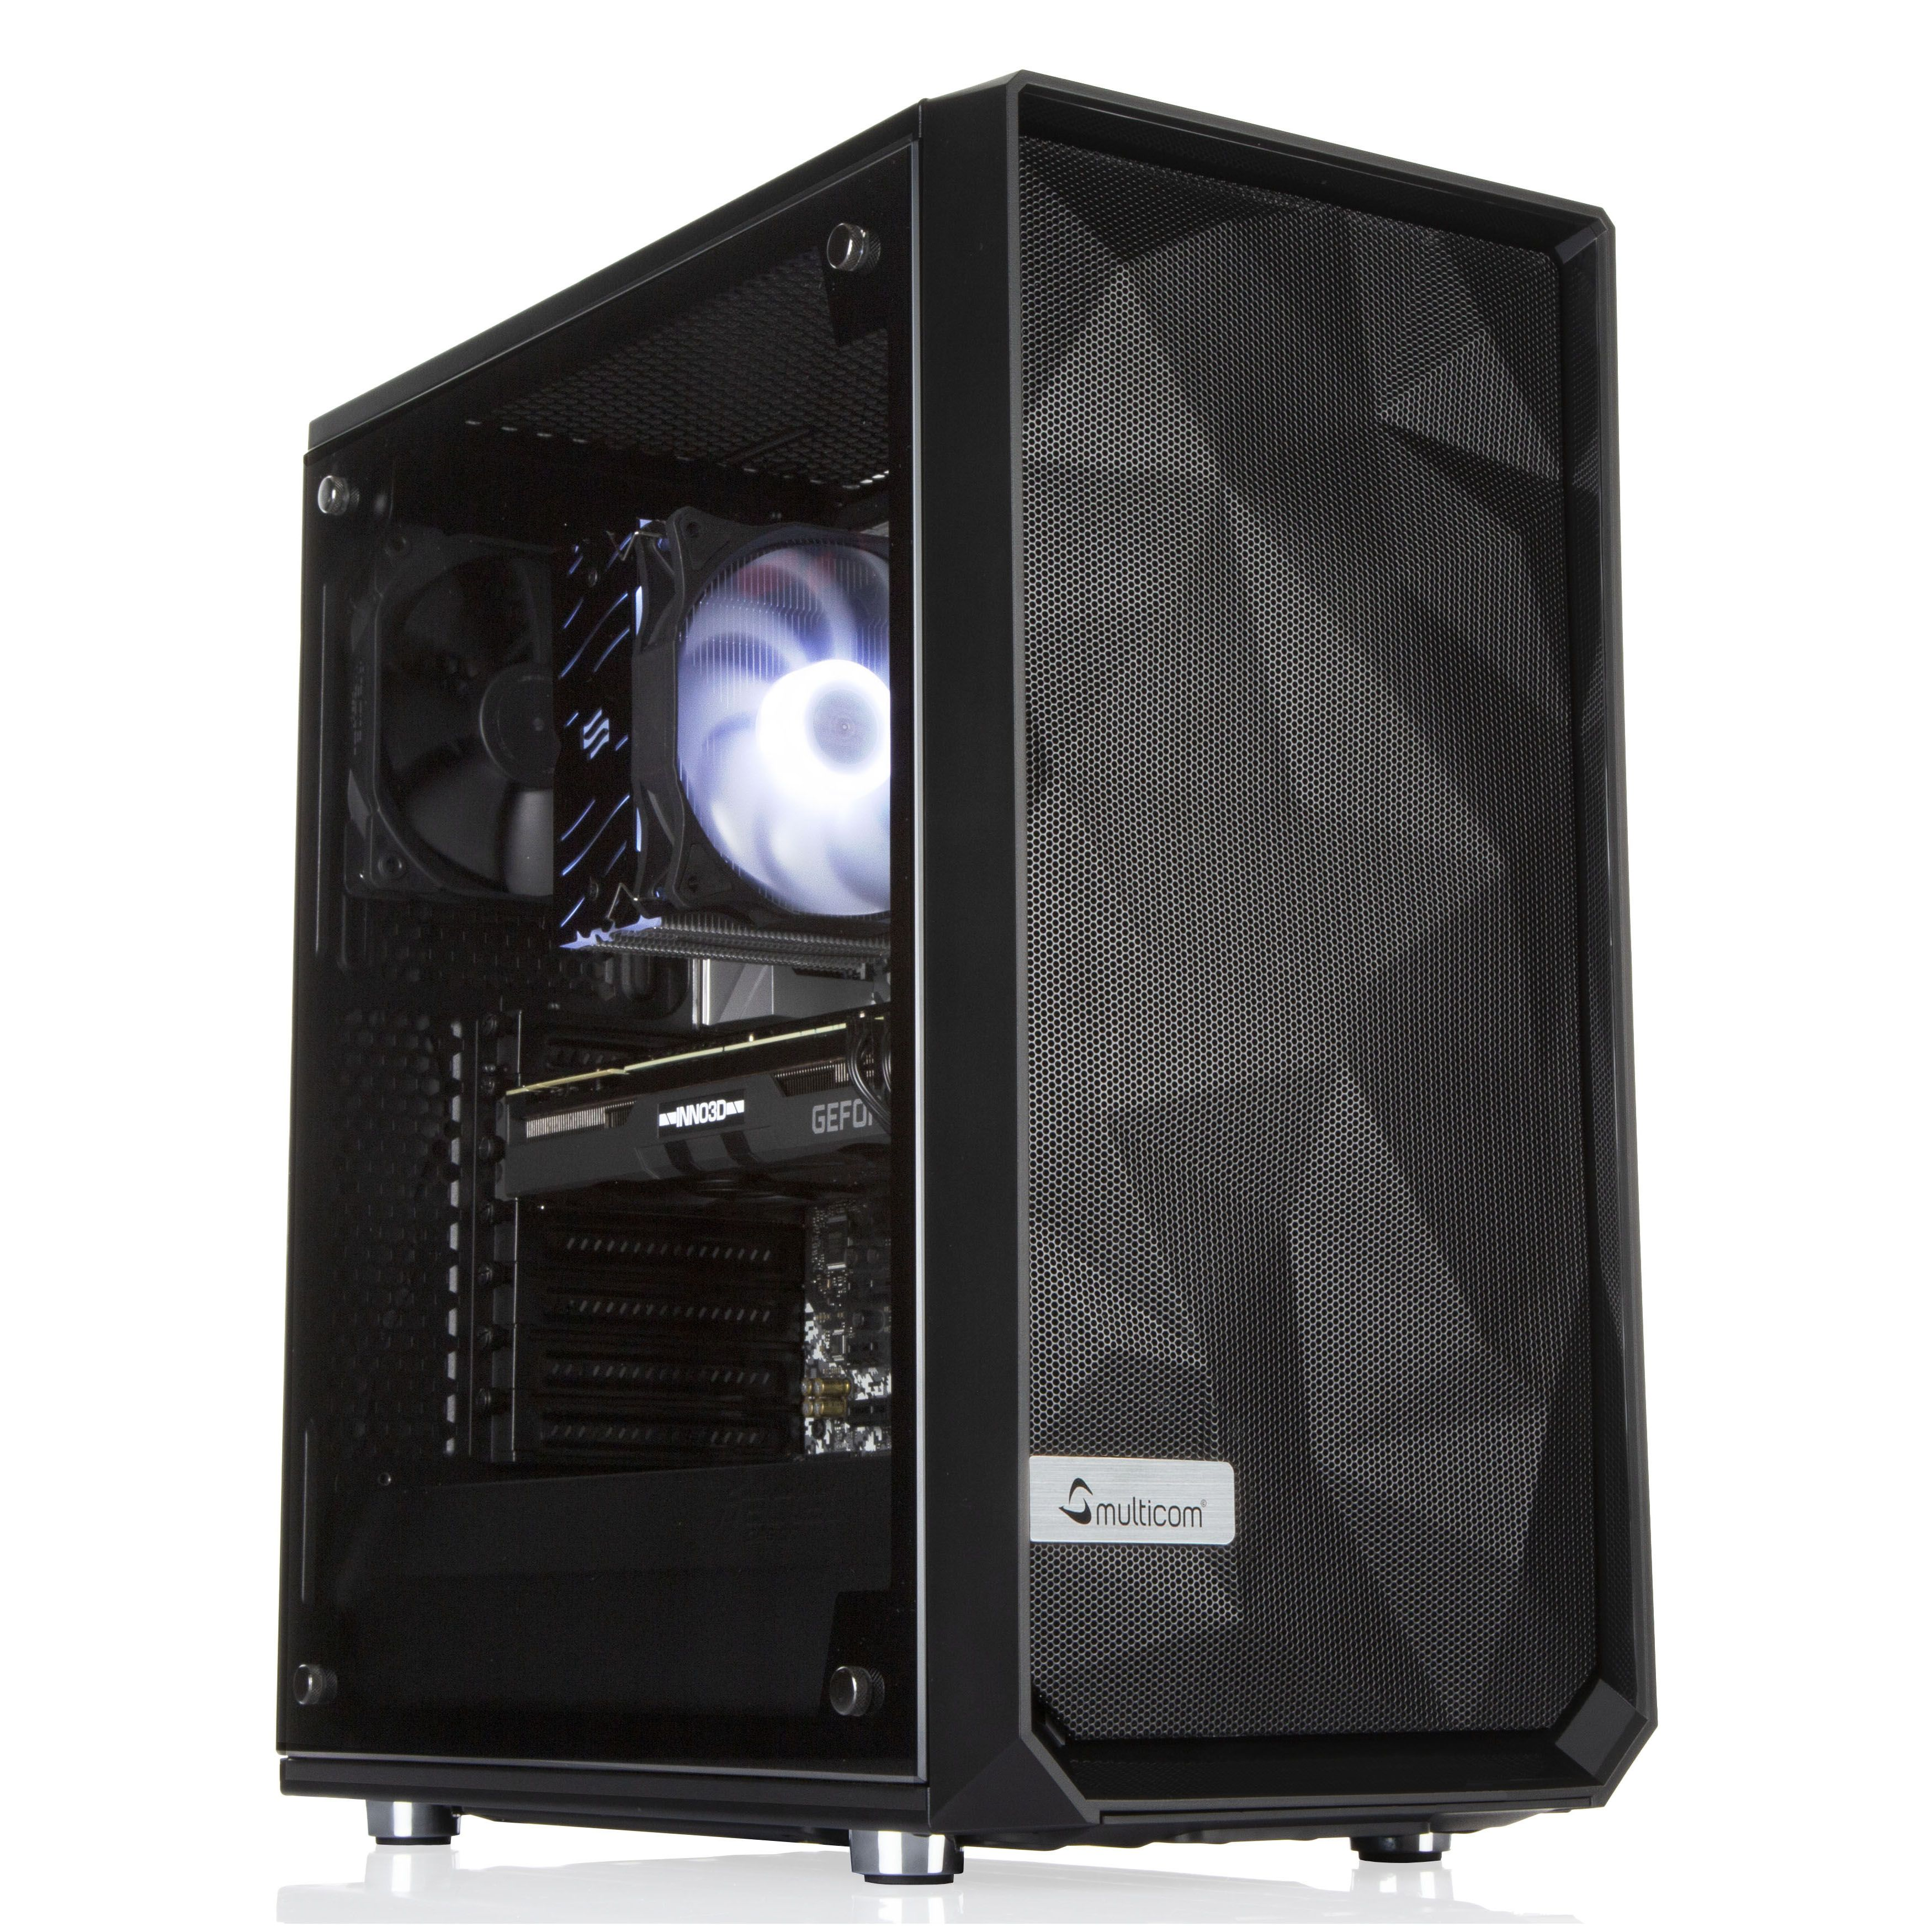 Multicom A823R Gaming-PC by INNO3D AMD Ryzen 5 3600, 16GB, 512GB PCIe SSD, 2TB HDD, GeForce RTX 2060 Super 8GB, 600W, uten operativsystem (MULTICOM-A823R-AMDFB)